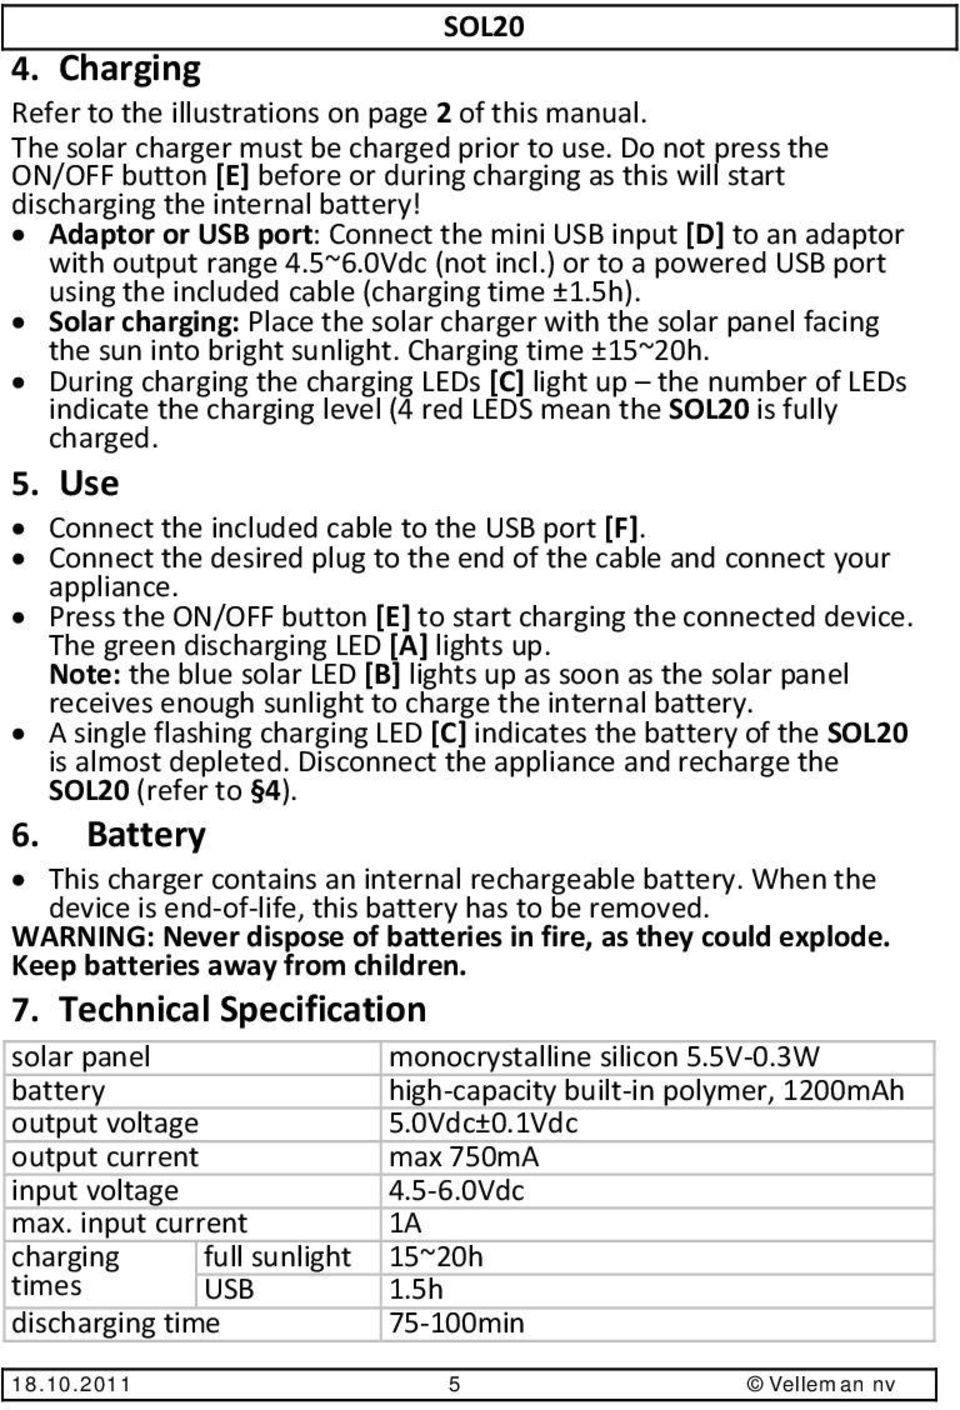 5~6.0Vdc (not incl.) or to a powered USB port using the included cable (charging time ±1.5h). Solar charging: Place the solar charger with the solar panel facing the sun into bright sunlight.